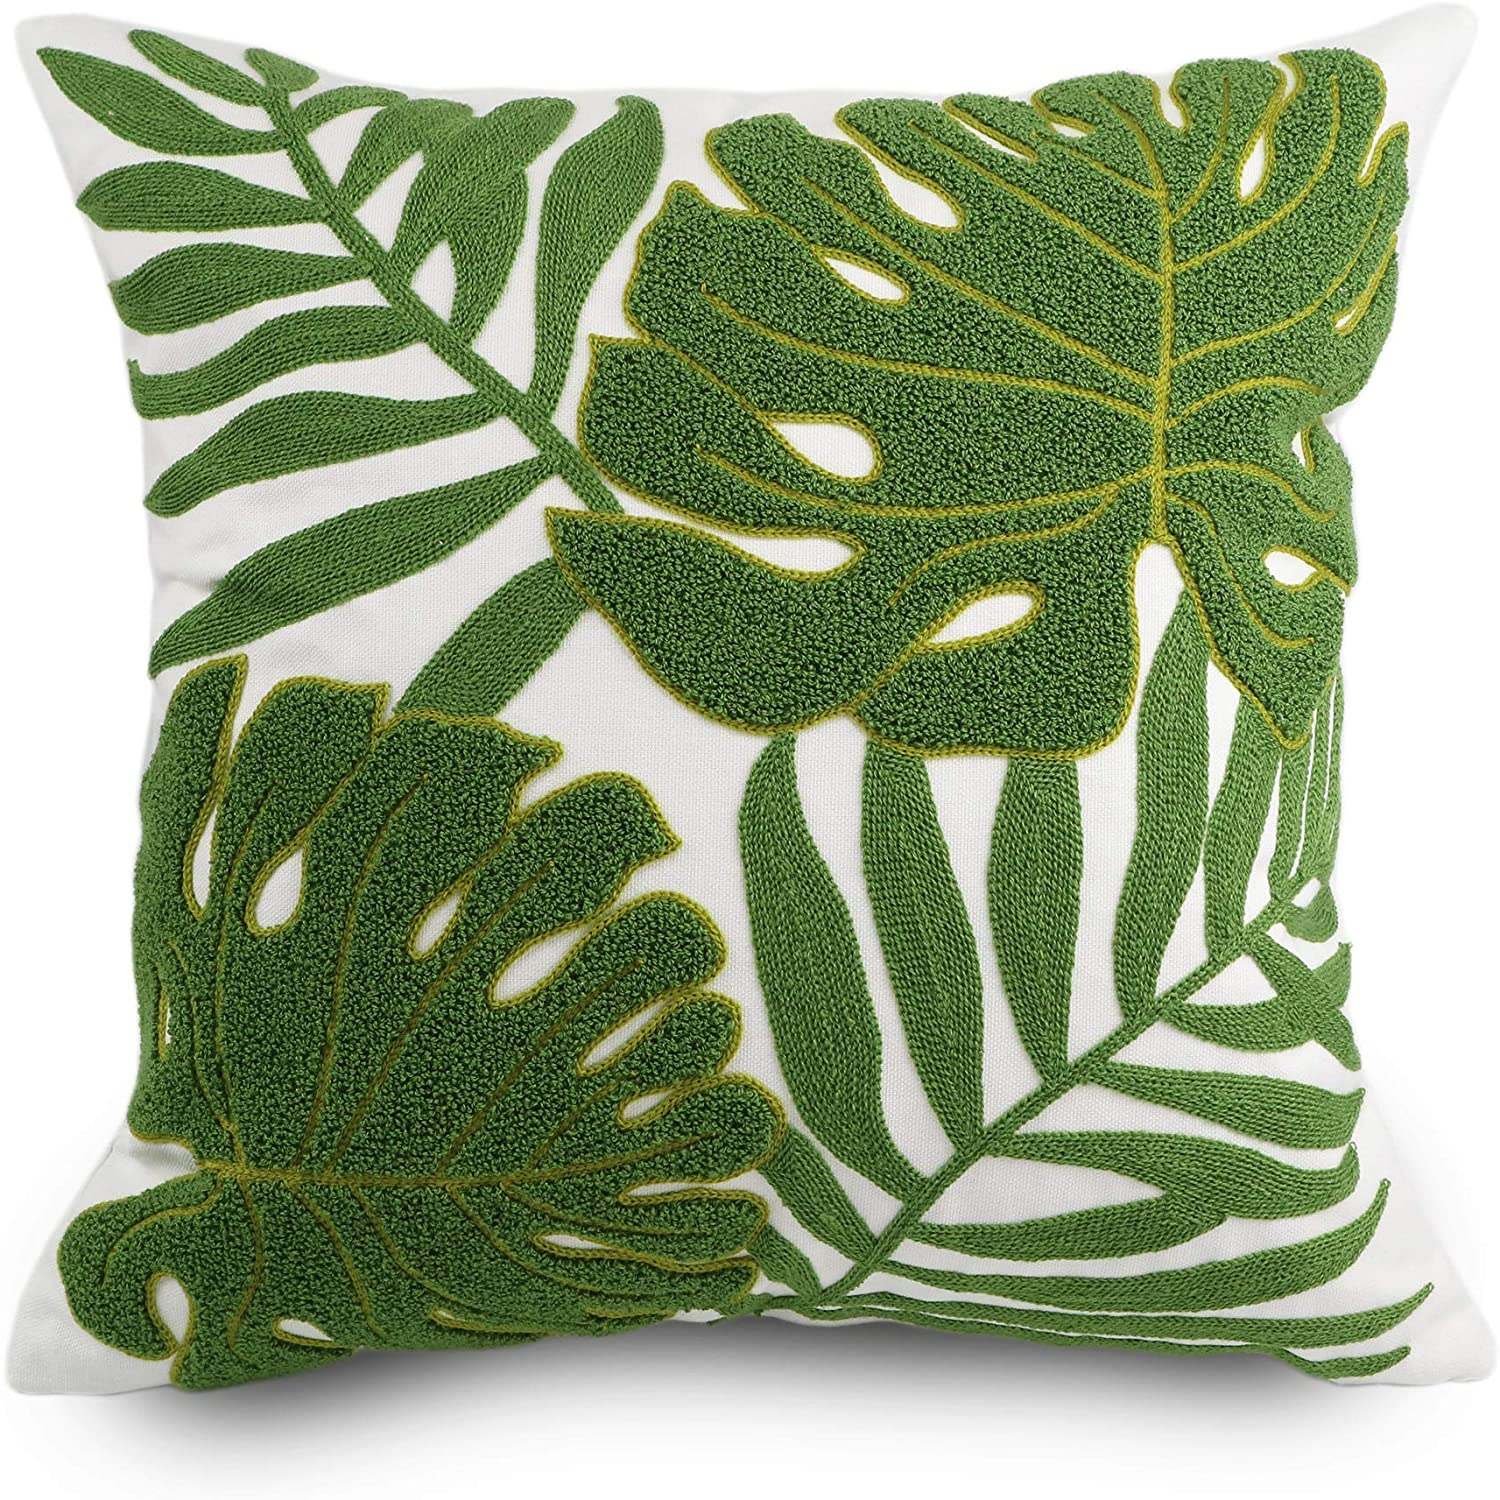 Amazon Com Hodeco Decorative Throw Pillow Covers 18x18 Tropical Green Leaves Embroidery Floor Pillow Cover For Couch 100 Cotton Cushion Cover Pillow Case Plant Monstera Leaf Loop Embroidered 45x45cm 1 Piece Home Dark tropical painted artistic seamless pattern on black. hodeco decorative throw pillow covers 18x18 tropical green leaves embroidery floor pillow cover for couch 100 cotton cushion cover pillow case plant